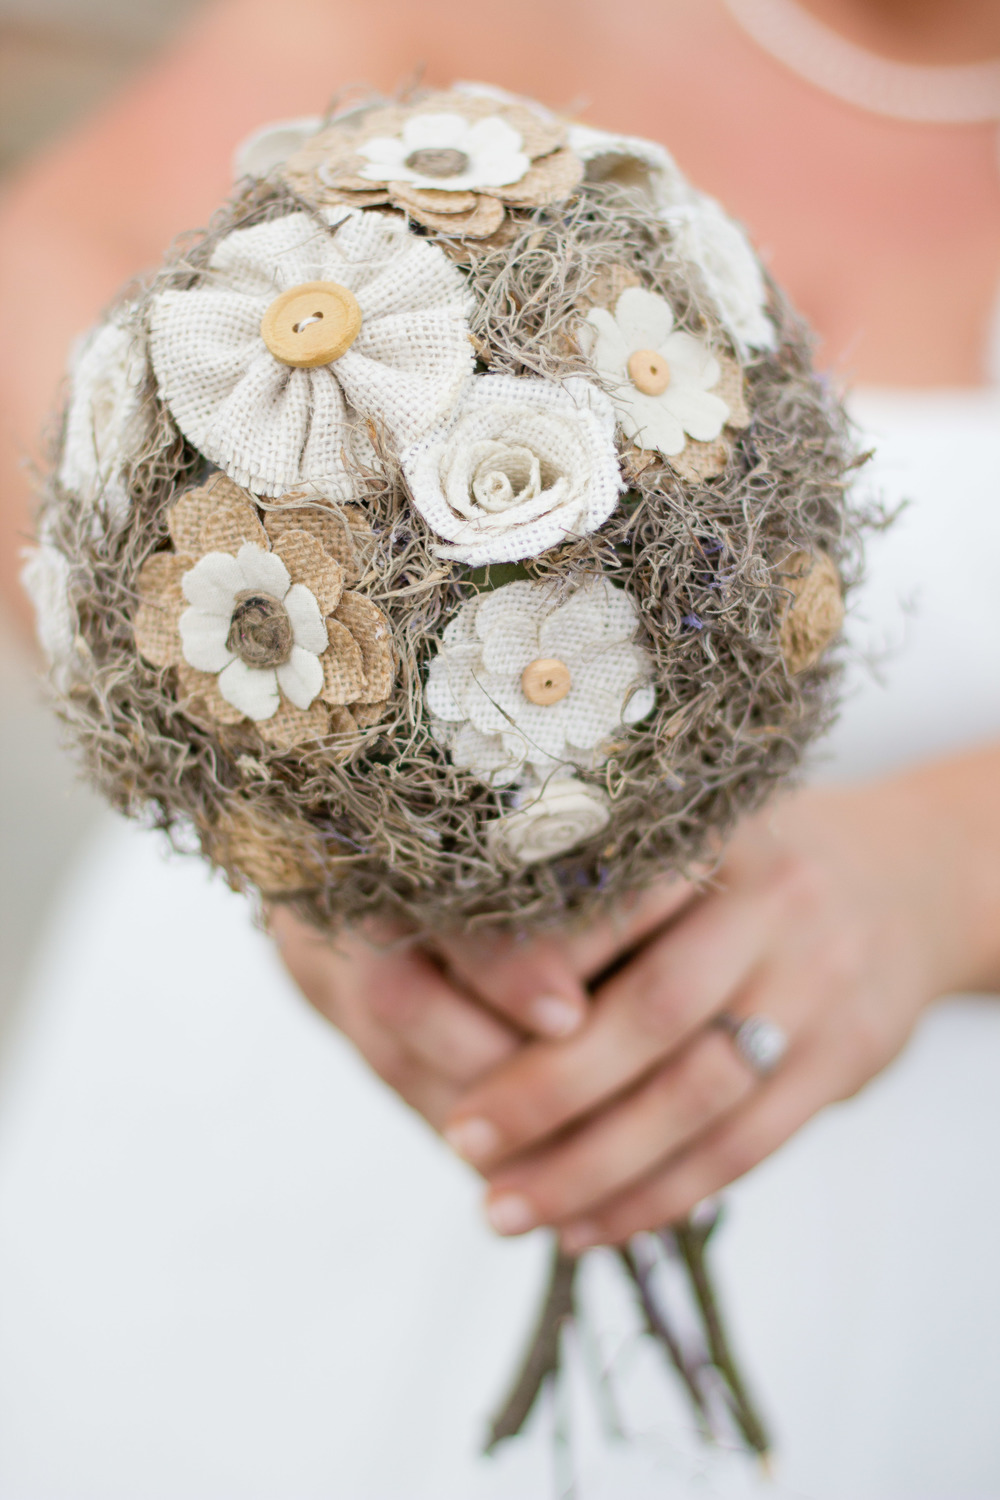 Western Theme Wedding | DIY Wedding Bouquet | Bridal Portraits for Karen | Greenville NC Wedding Photographer | www.memoriesbybryant.com